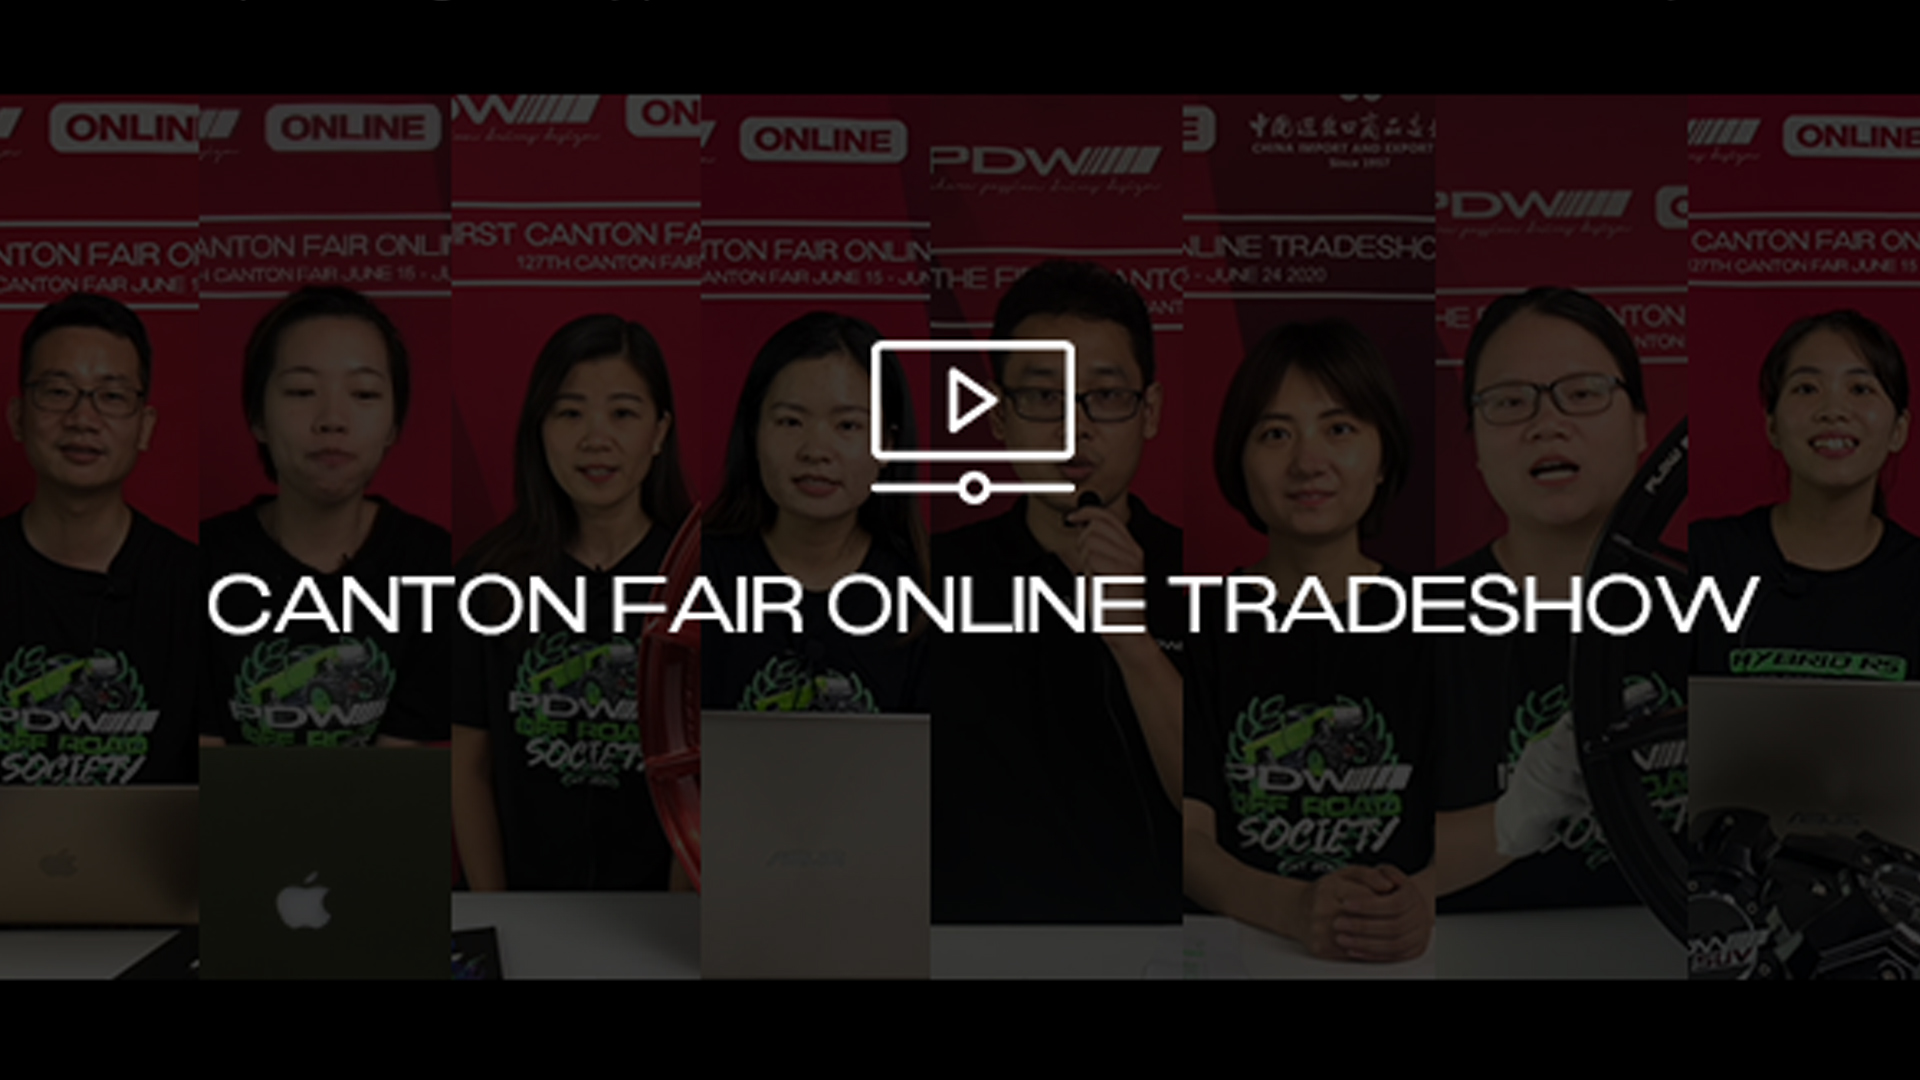 The 128th Session of Canton Fair scheduled online from October 15th to 24th.